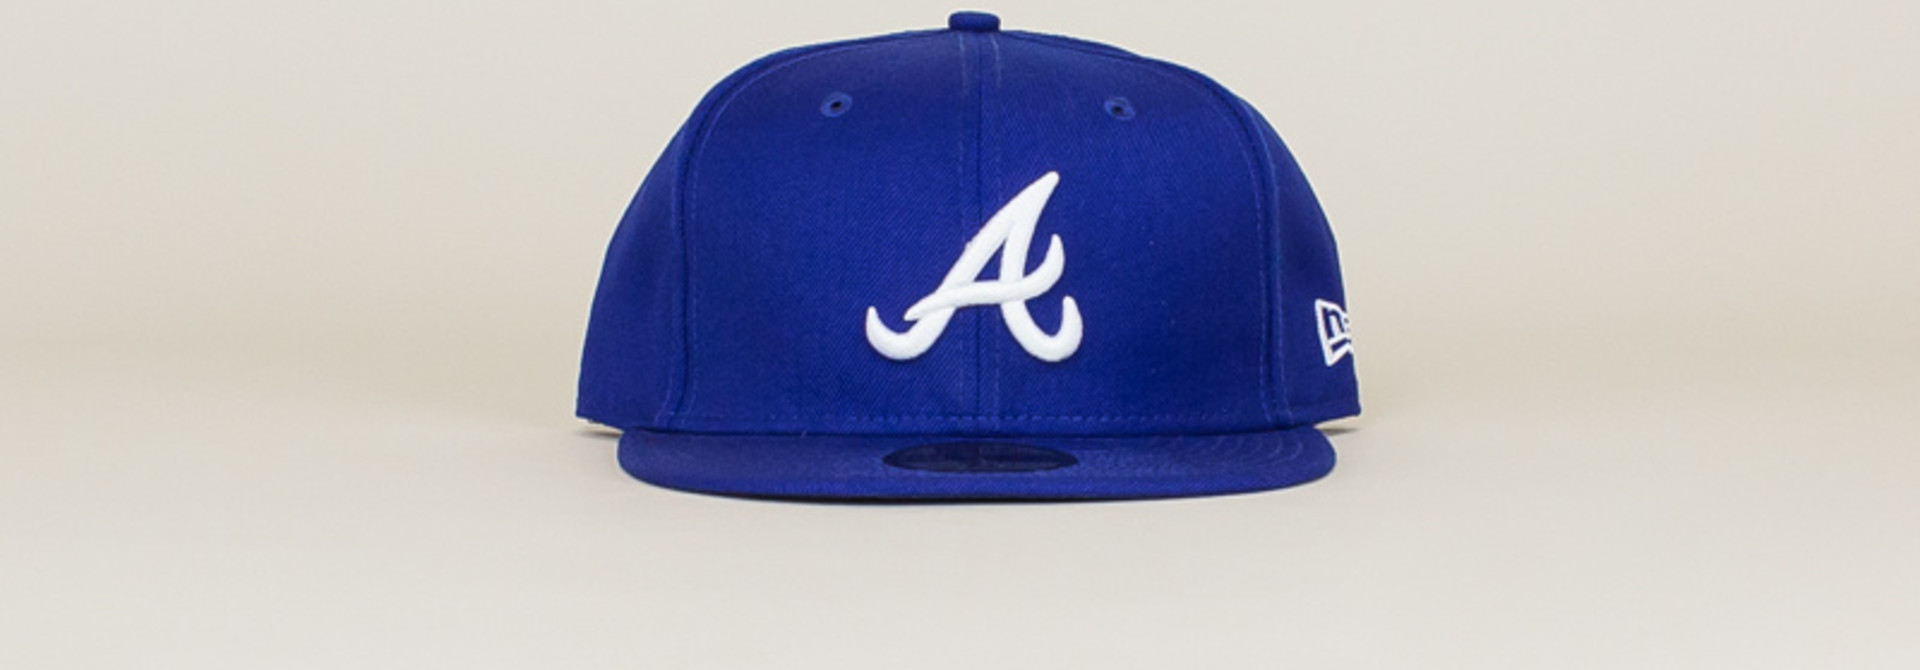 New Era Atlanta Braves Fitted Hat - Blue